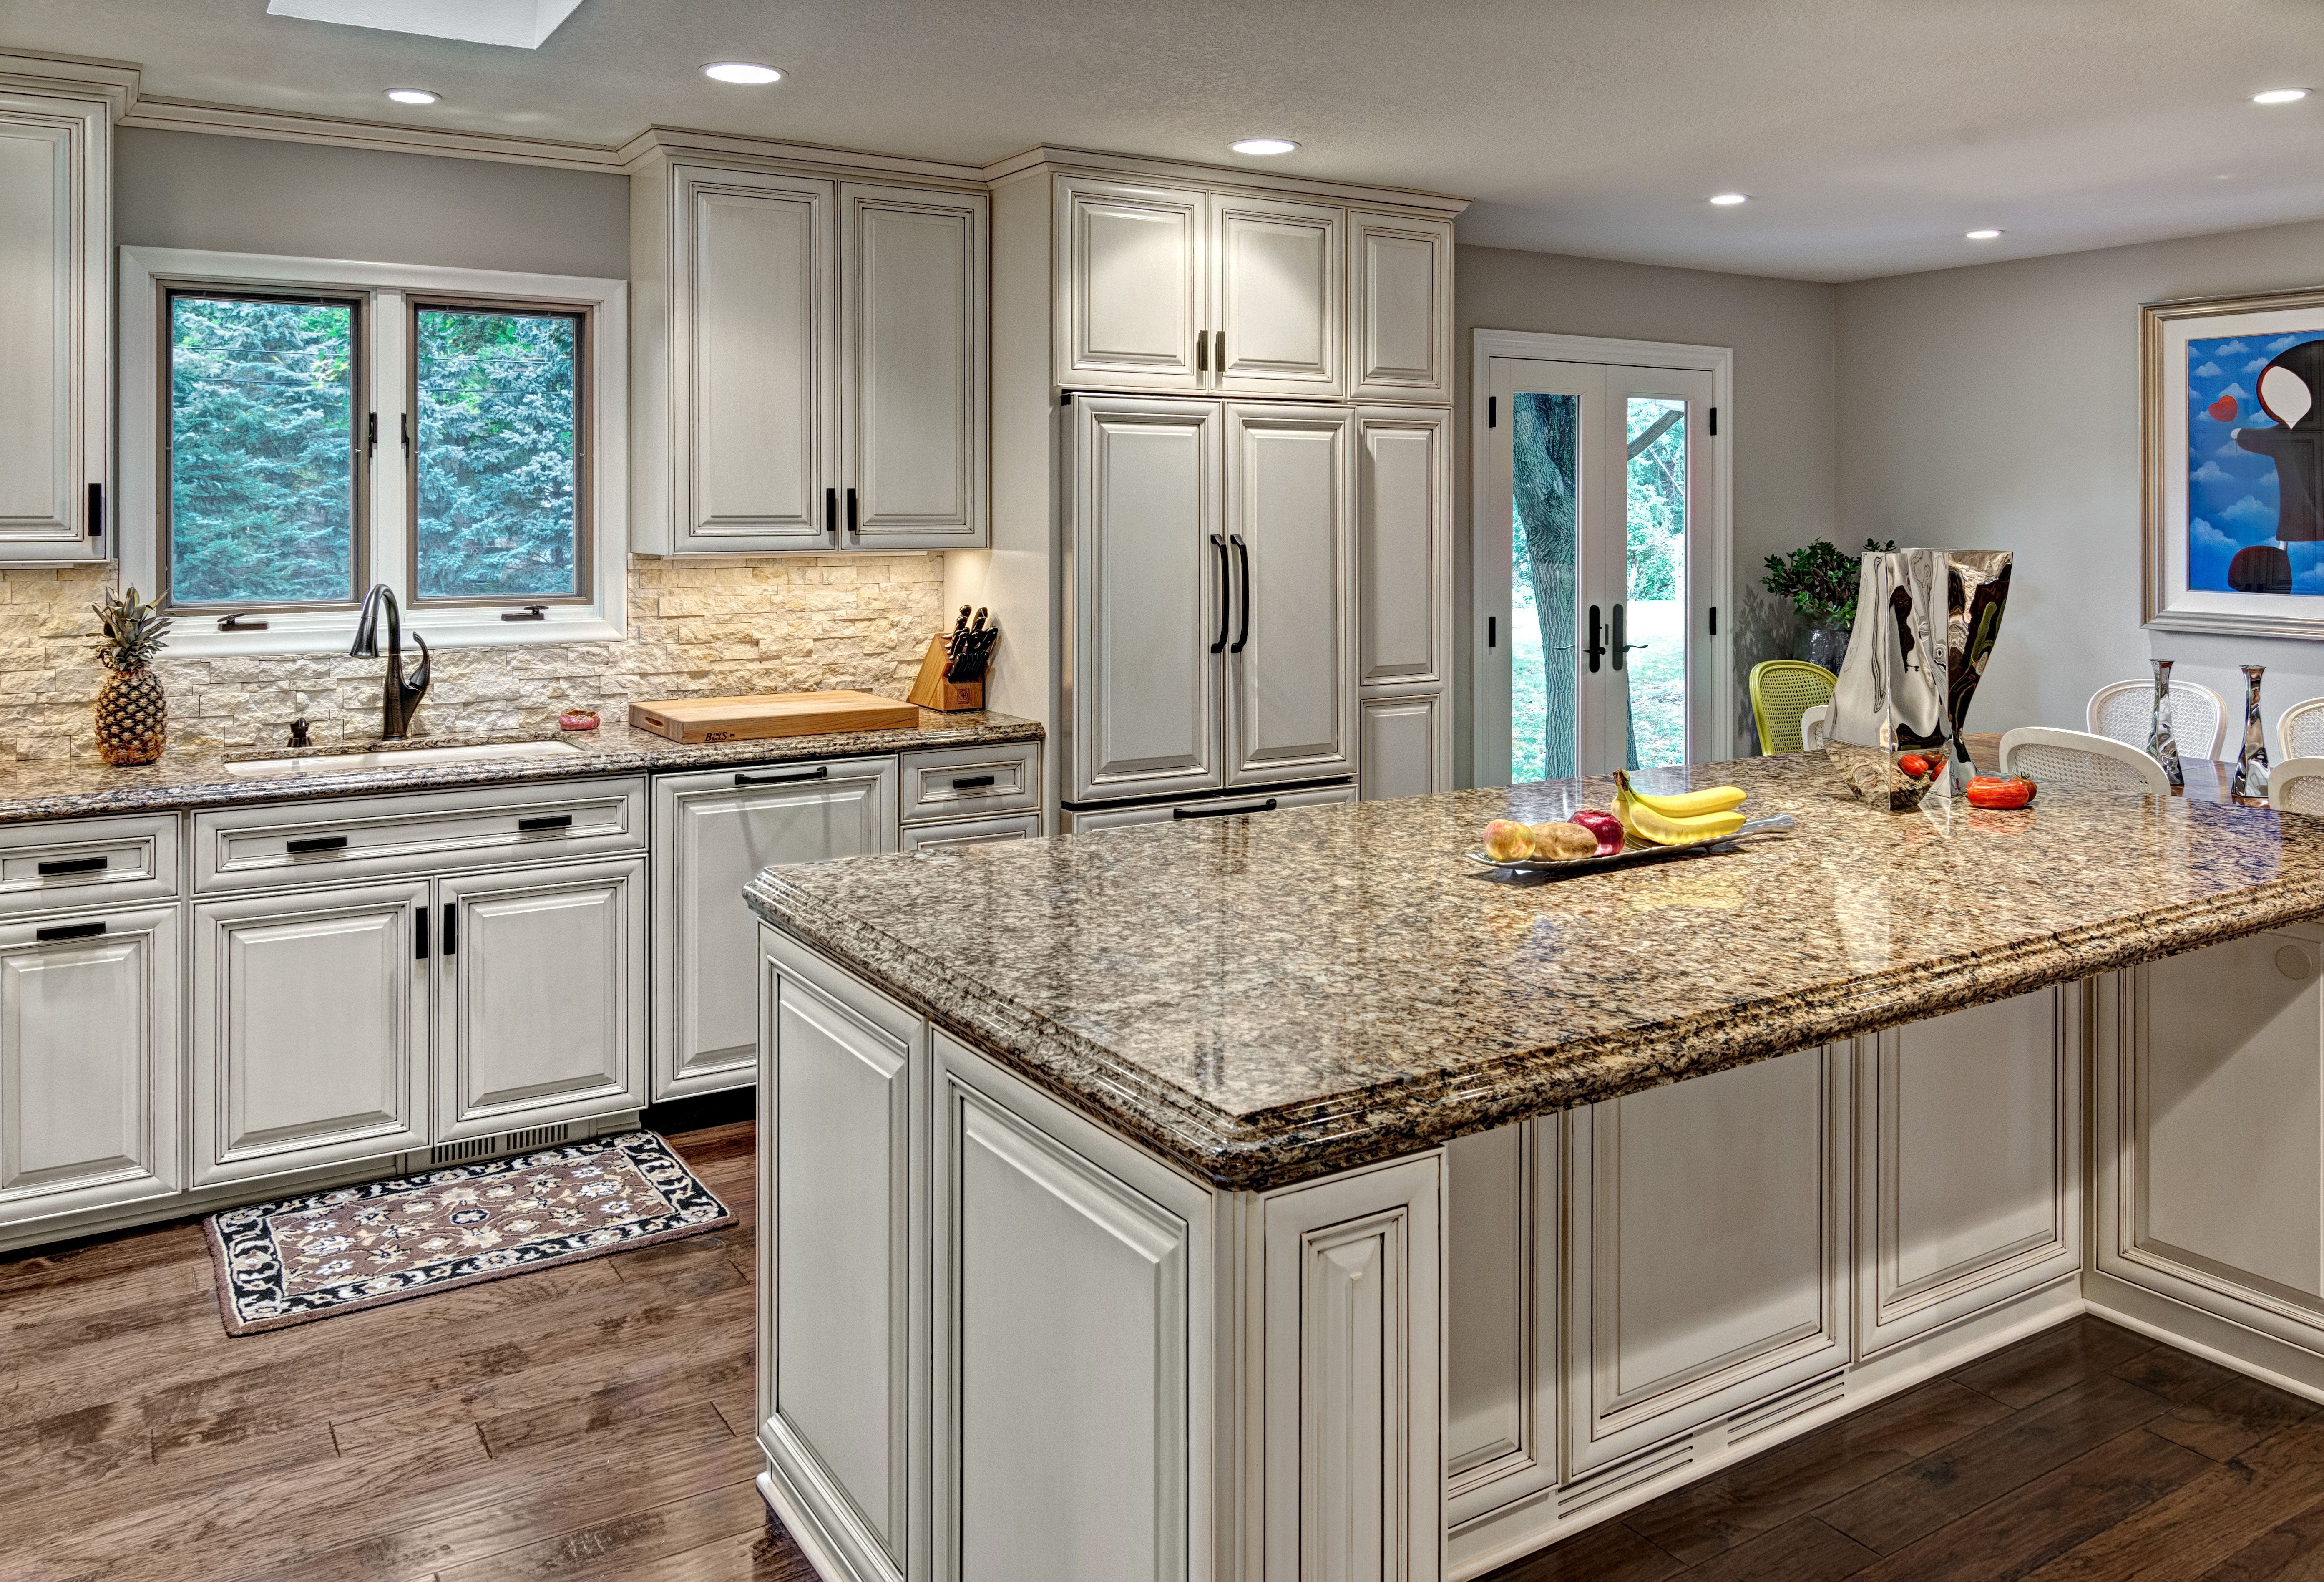 Very sleek, modern kitchen. Great feel with the cabinets ...